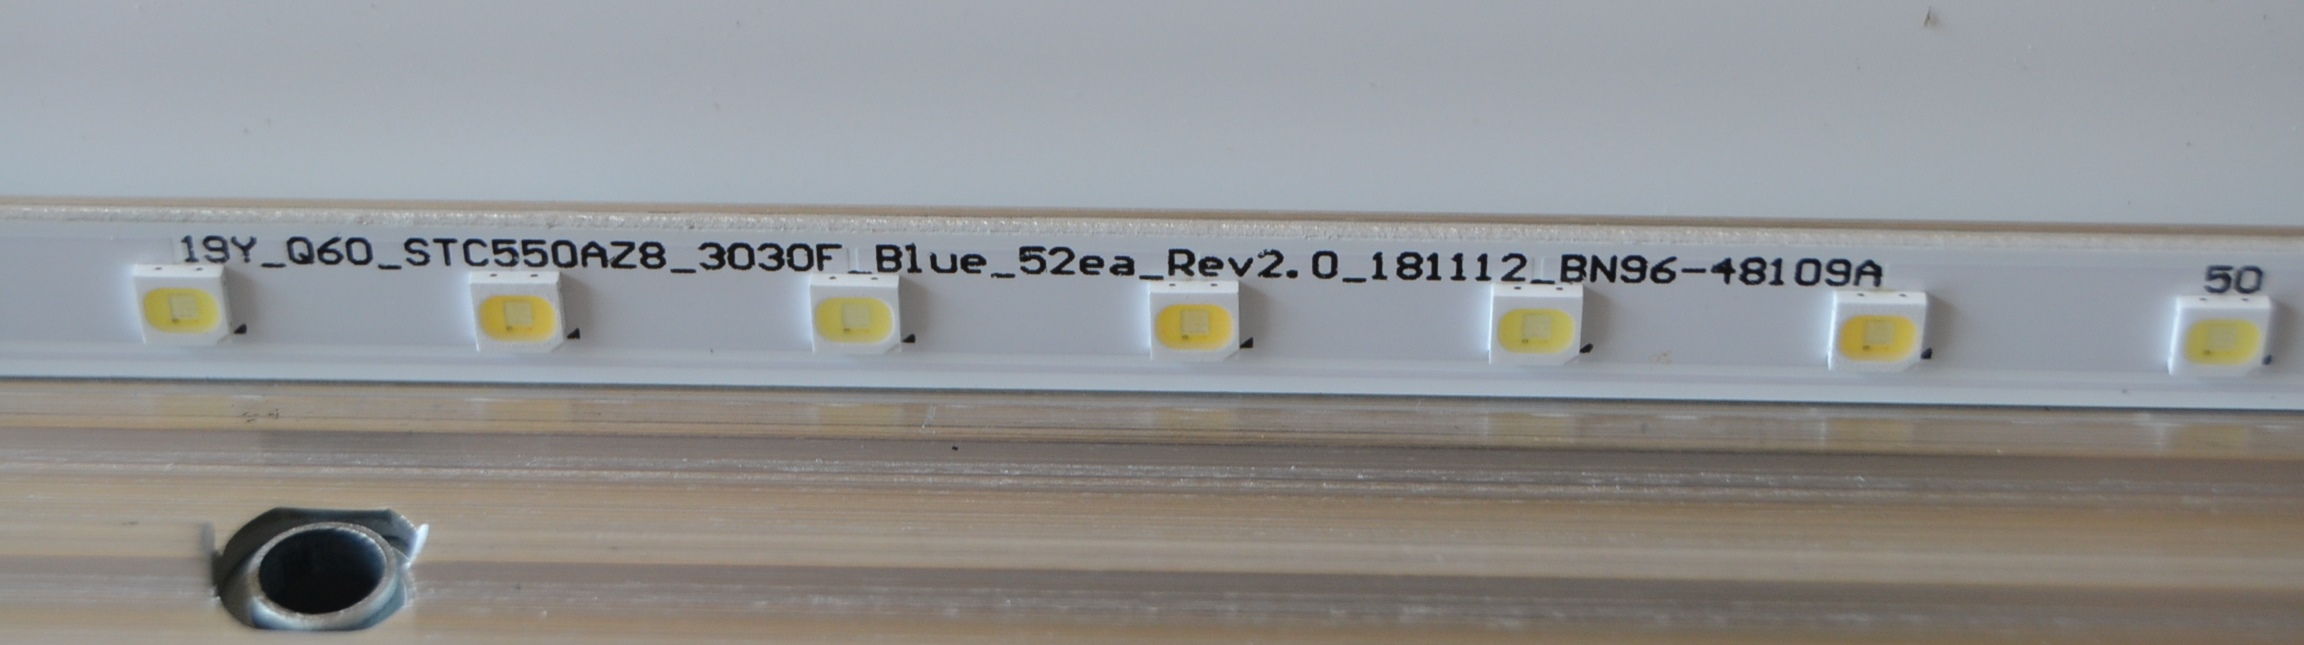 LB/55INC/SAM/QE55Q67 LED BACKLAIHT,19Y_Q60_STC550AZ8_3030F_Blue_52ea_Rev2.0_181112_BN96-48109A,